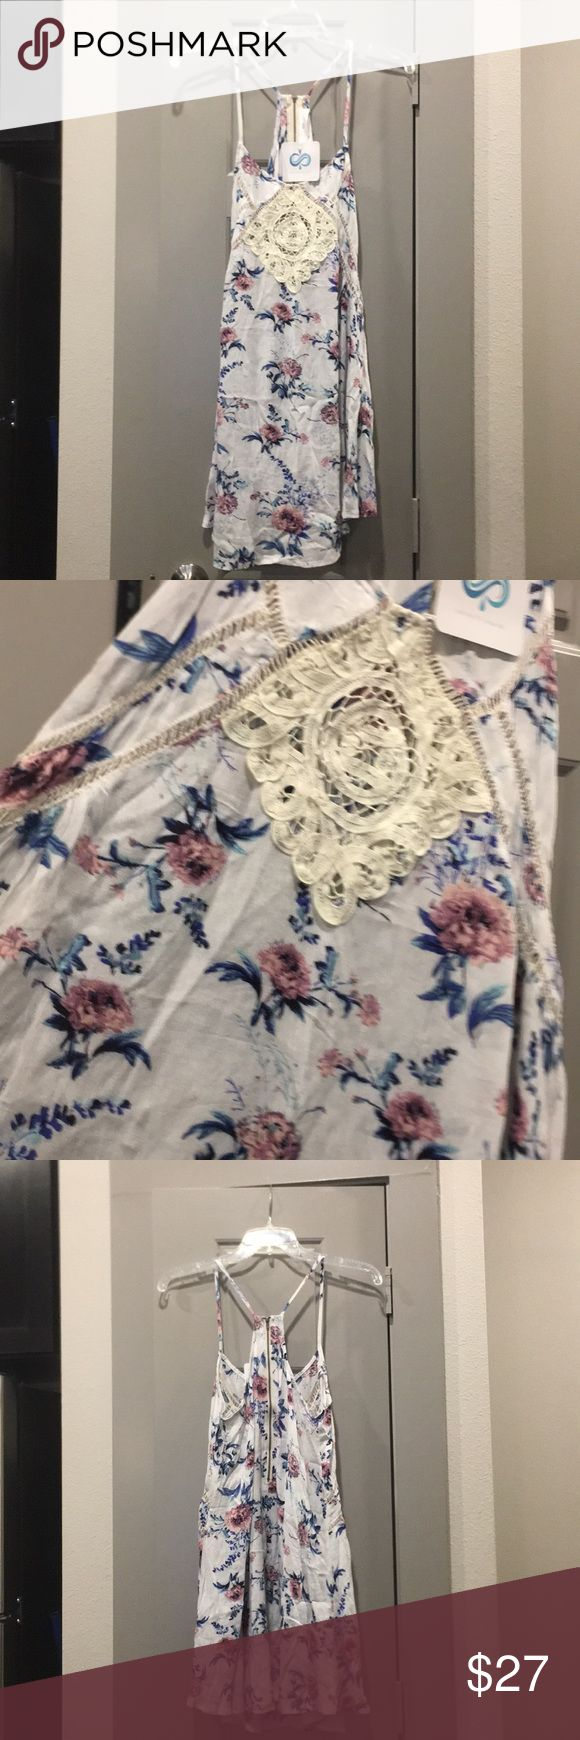 432ce663301c Infinity Raine Floral dress, size small NWT, reposh because it's a little  too big on me. Excellent quality, does not come with a liner.